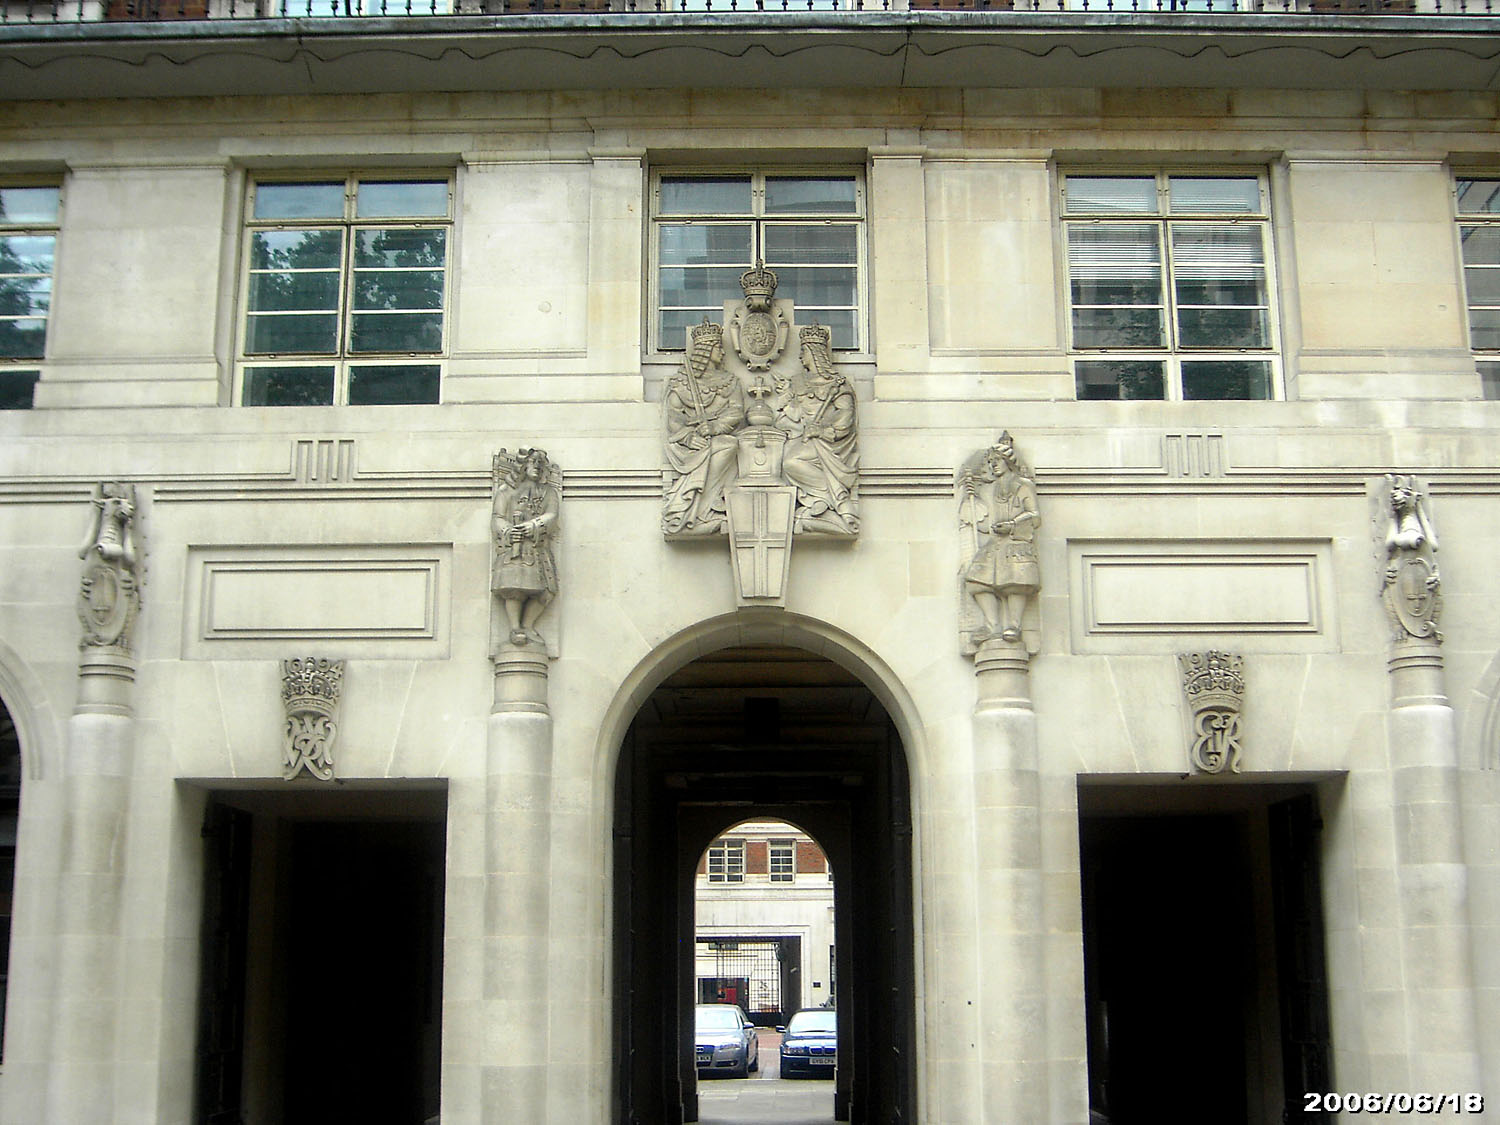 A Portland Stone sculpture from the Bank of England Annexe